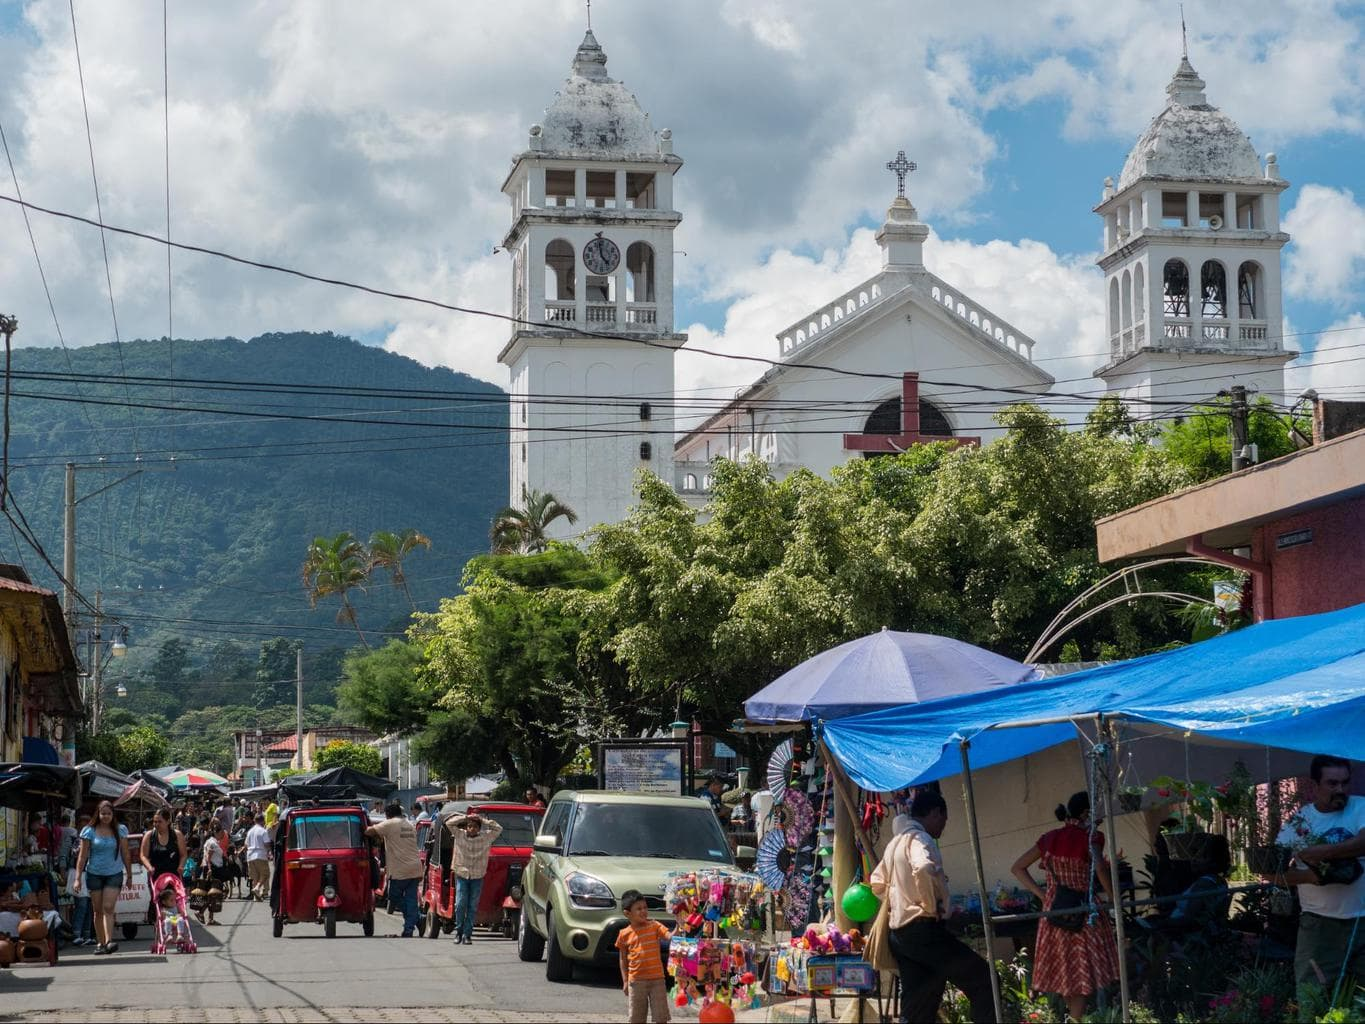 Weekend Food Fair in Juayua